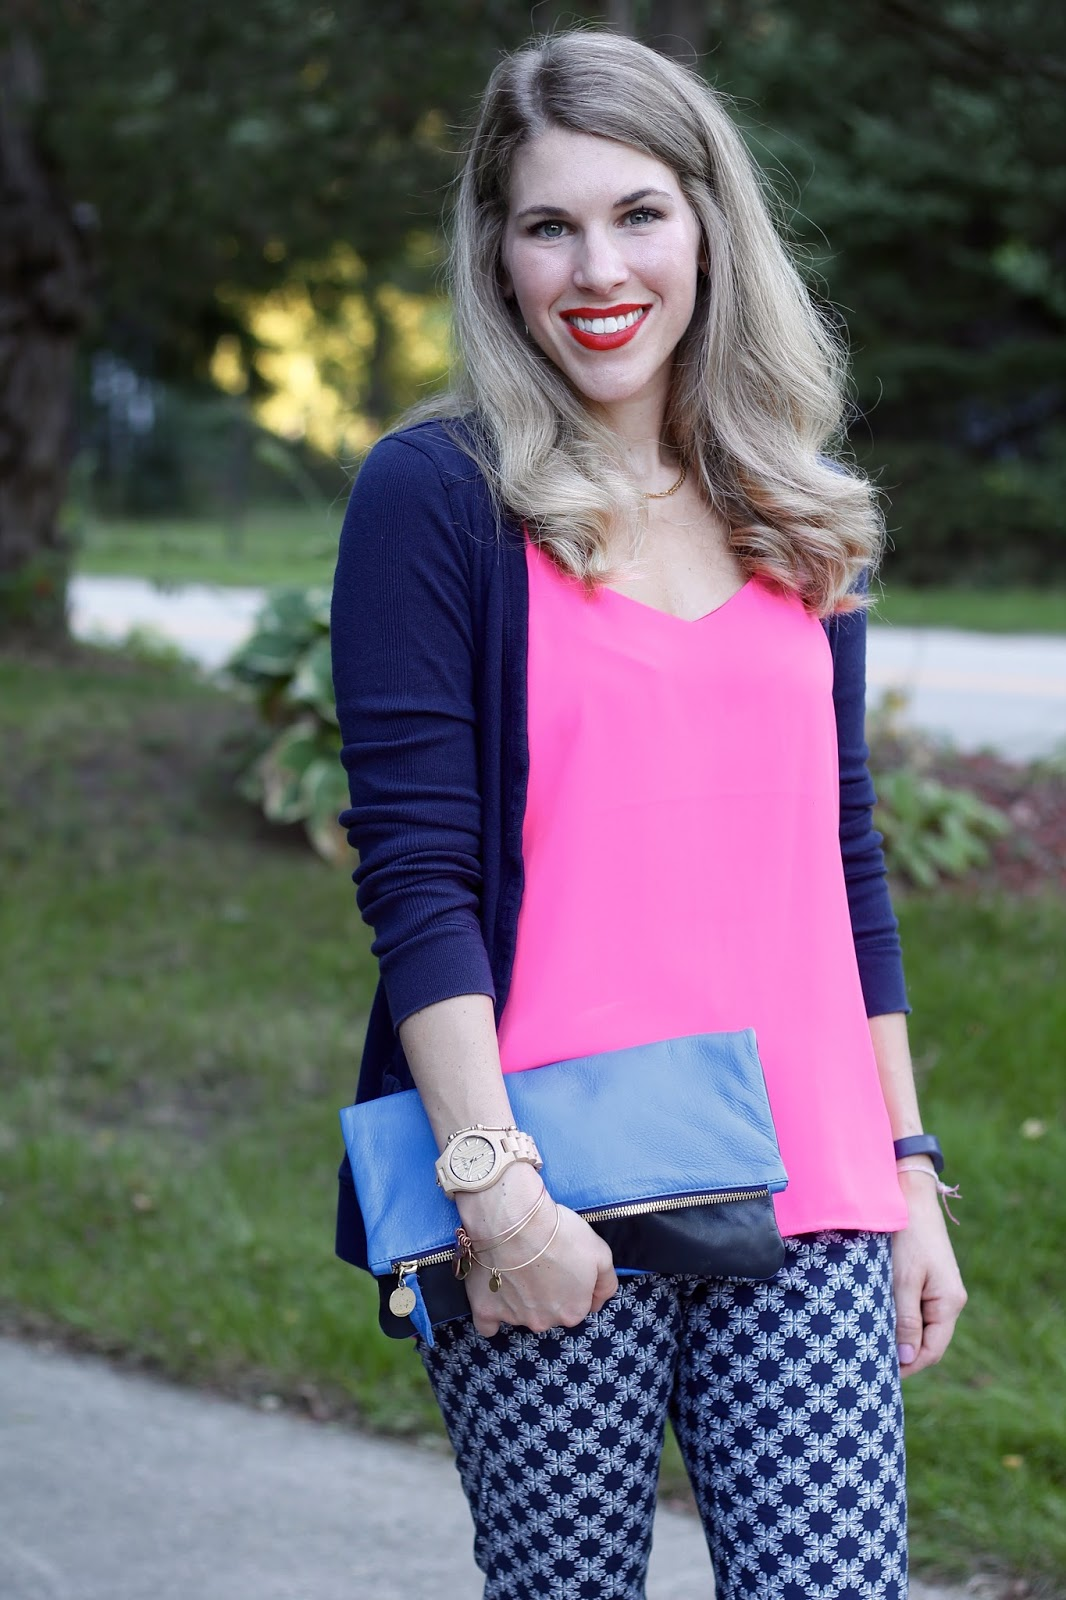 Pink Barcelona cami, navy cardigan, printed blue pants, gold sandals, blue Clare V. clutch